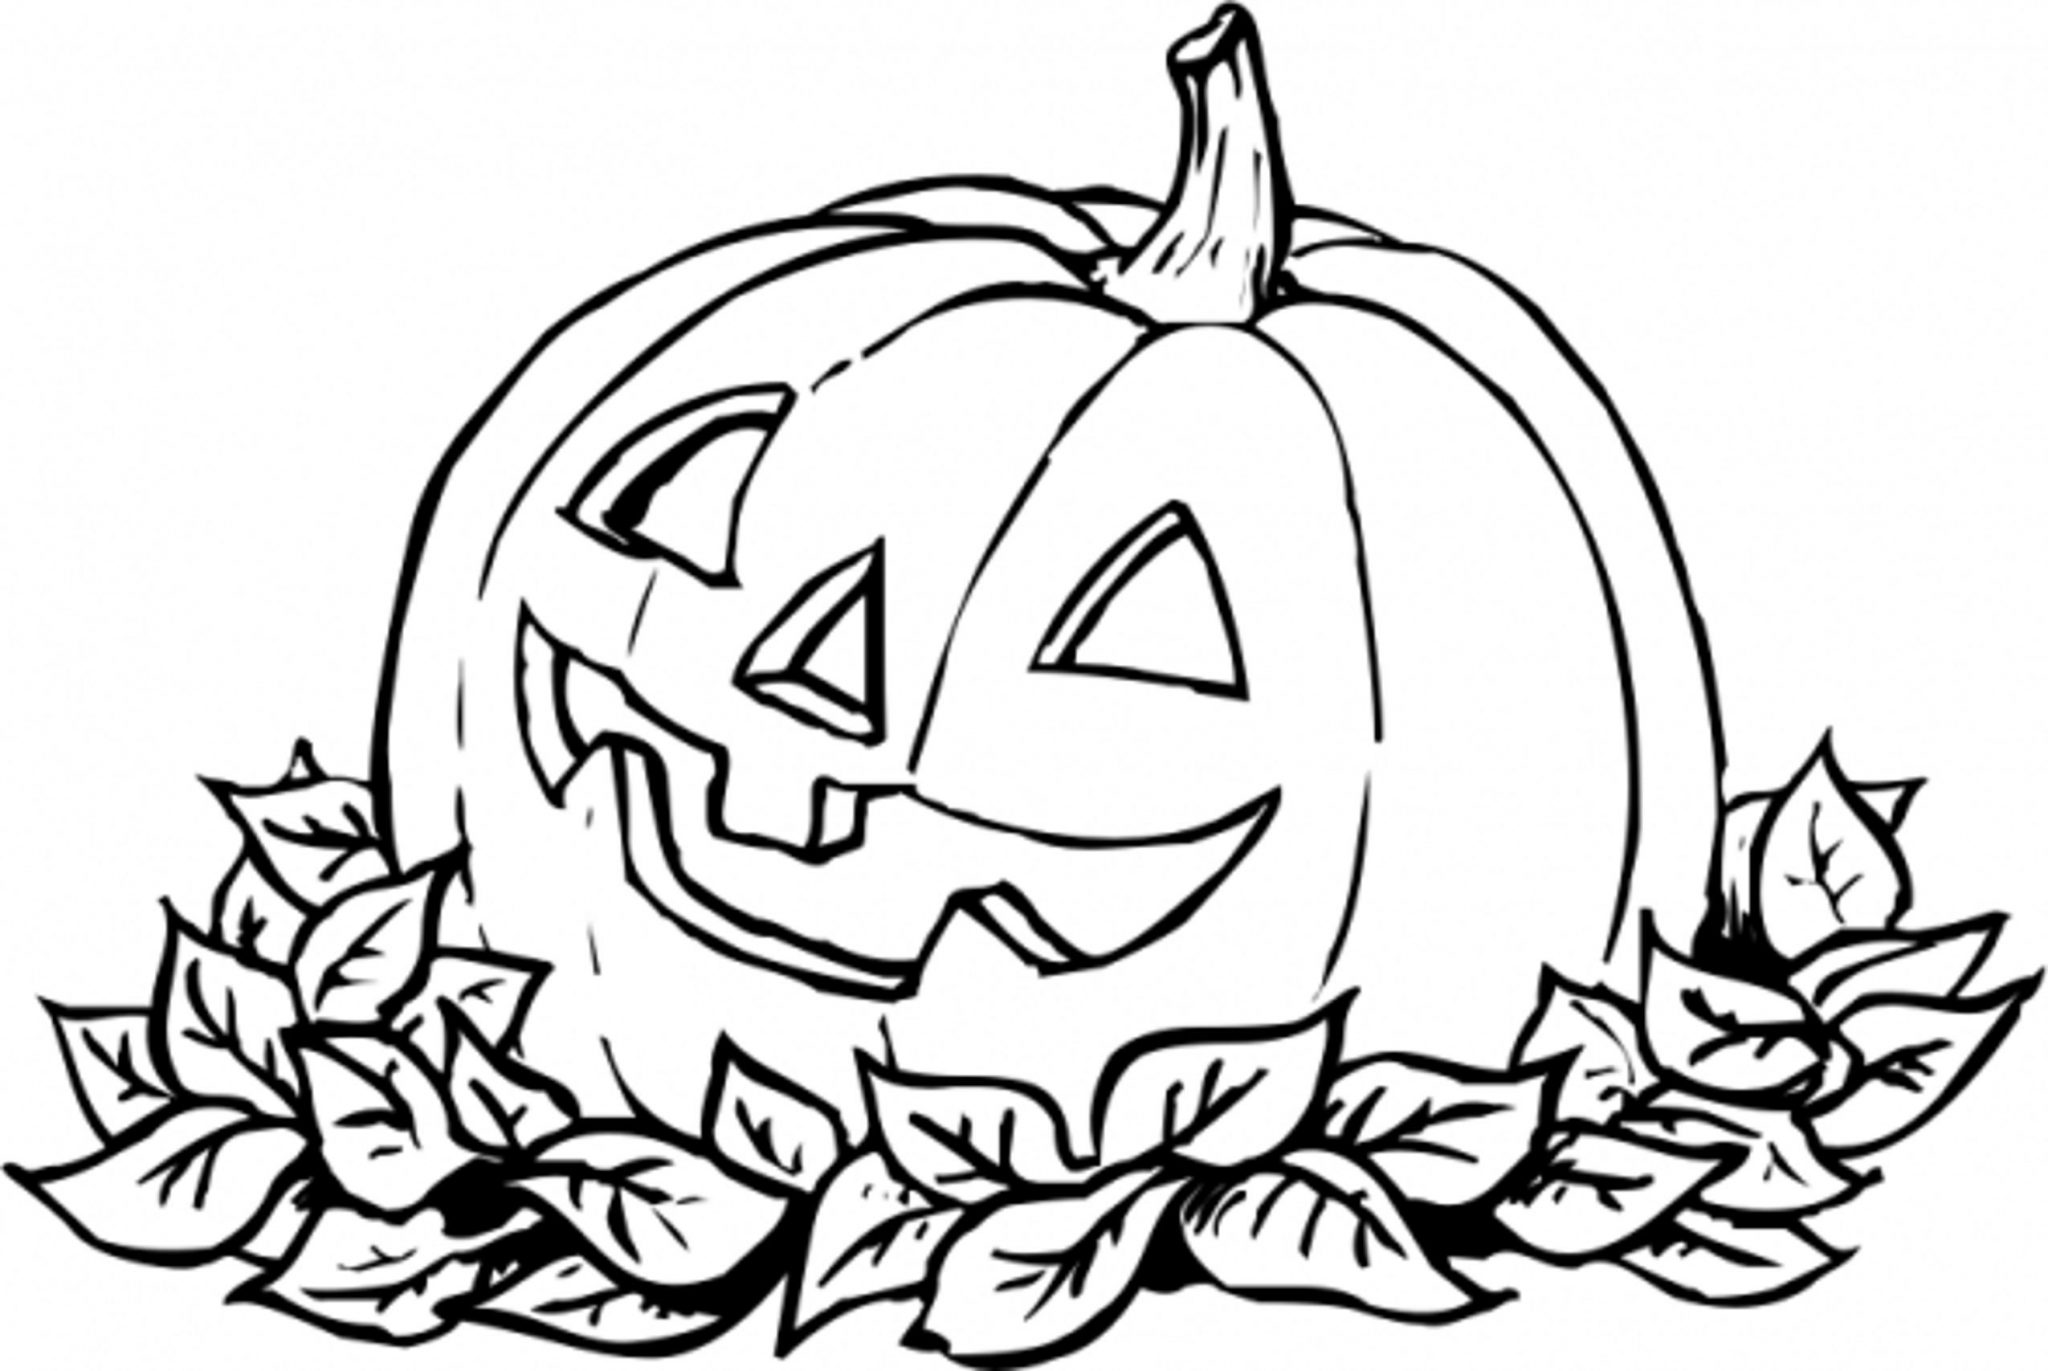 coloring pages of pumpkins print download pumpkin coloring pages and benefits of pumpkins of coloring pages